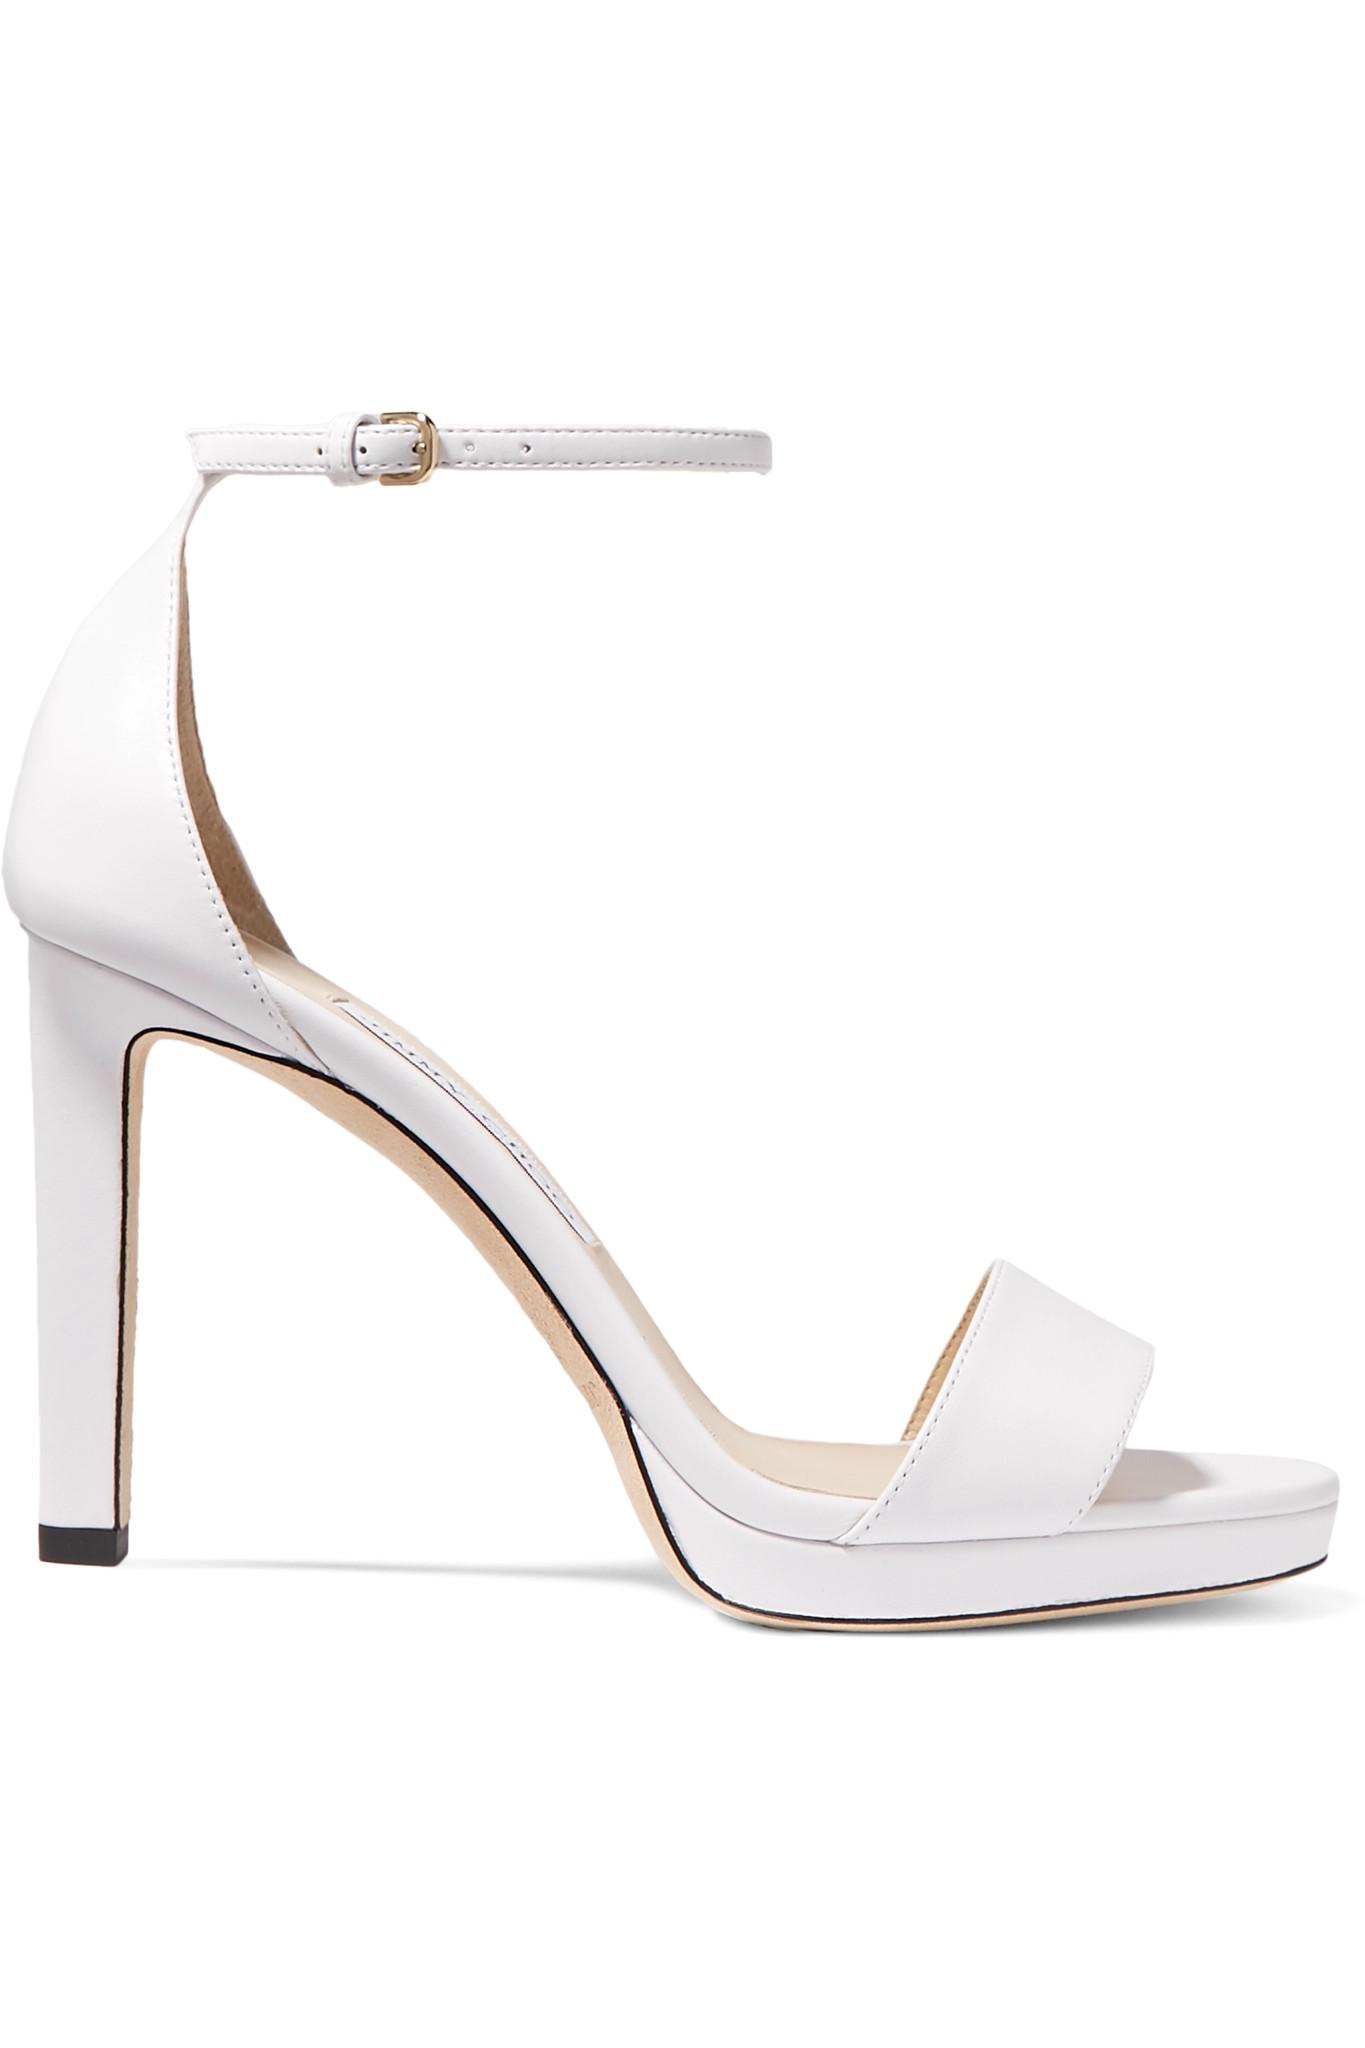 9770863d2df Lyst - Jimmy Choo Misty 100 Leather Platform Sandals in White